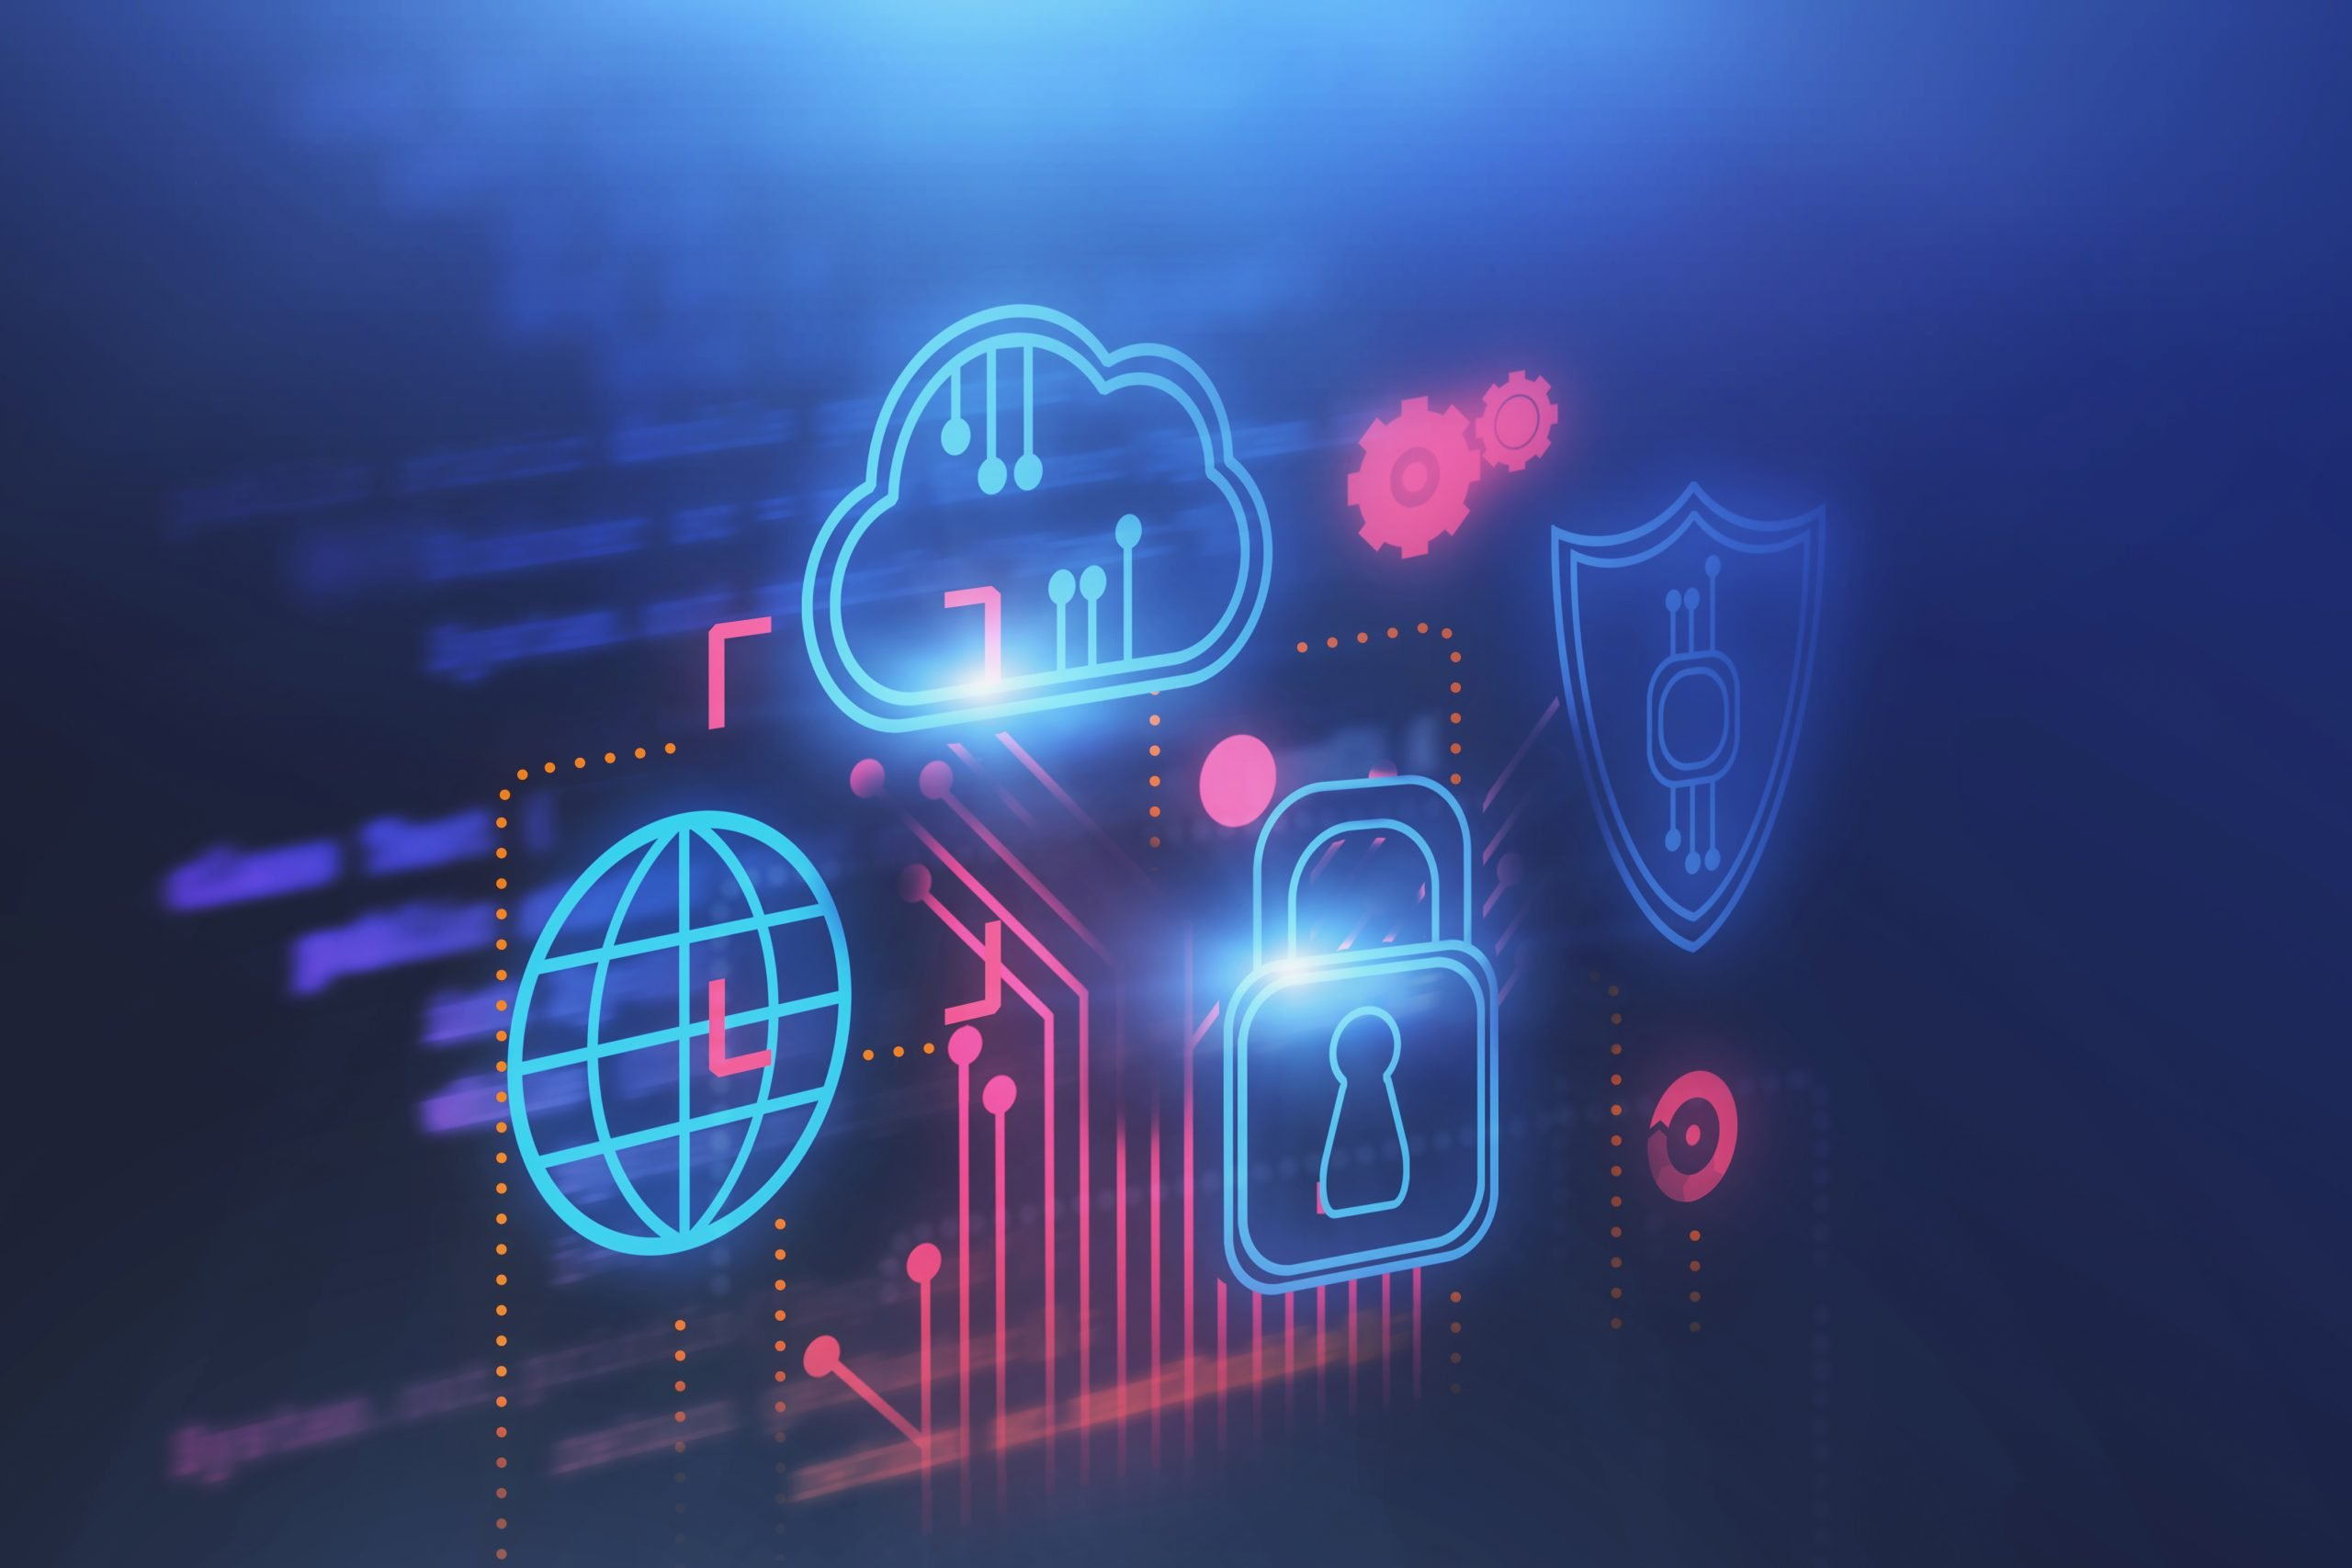 Cloud computer and cyber security background   LaingBuisson News 2560x1707